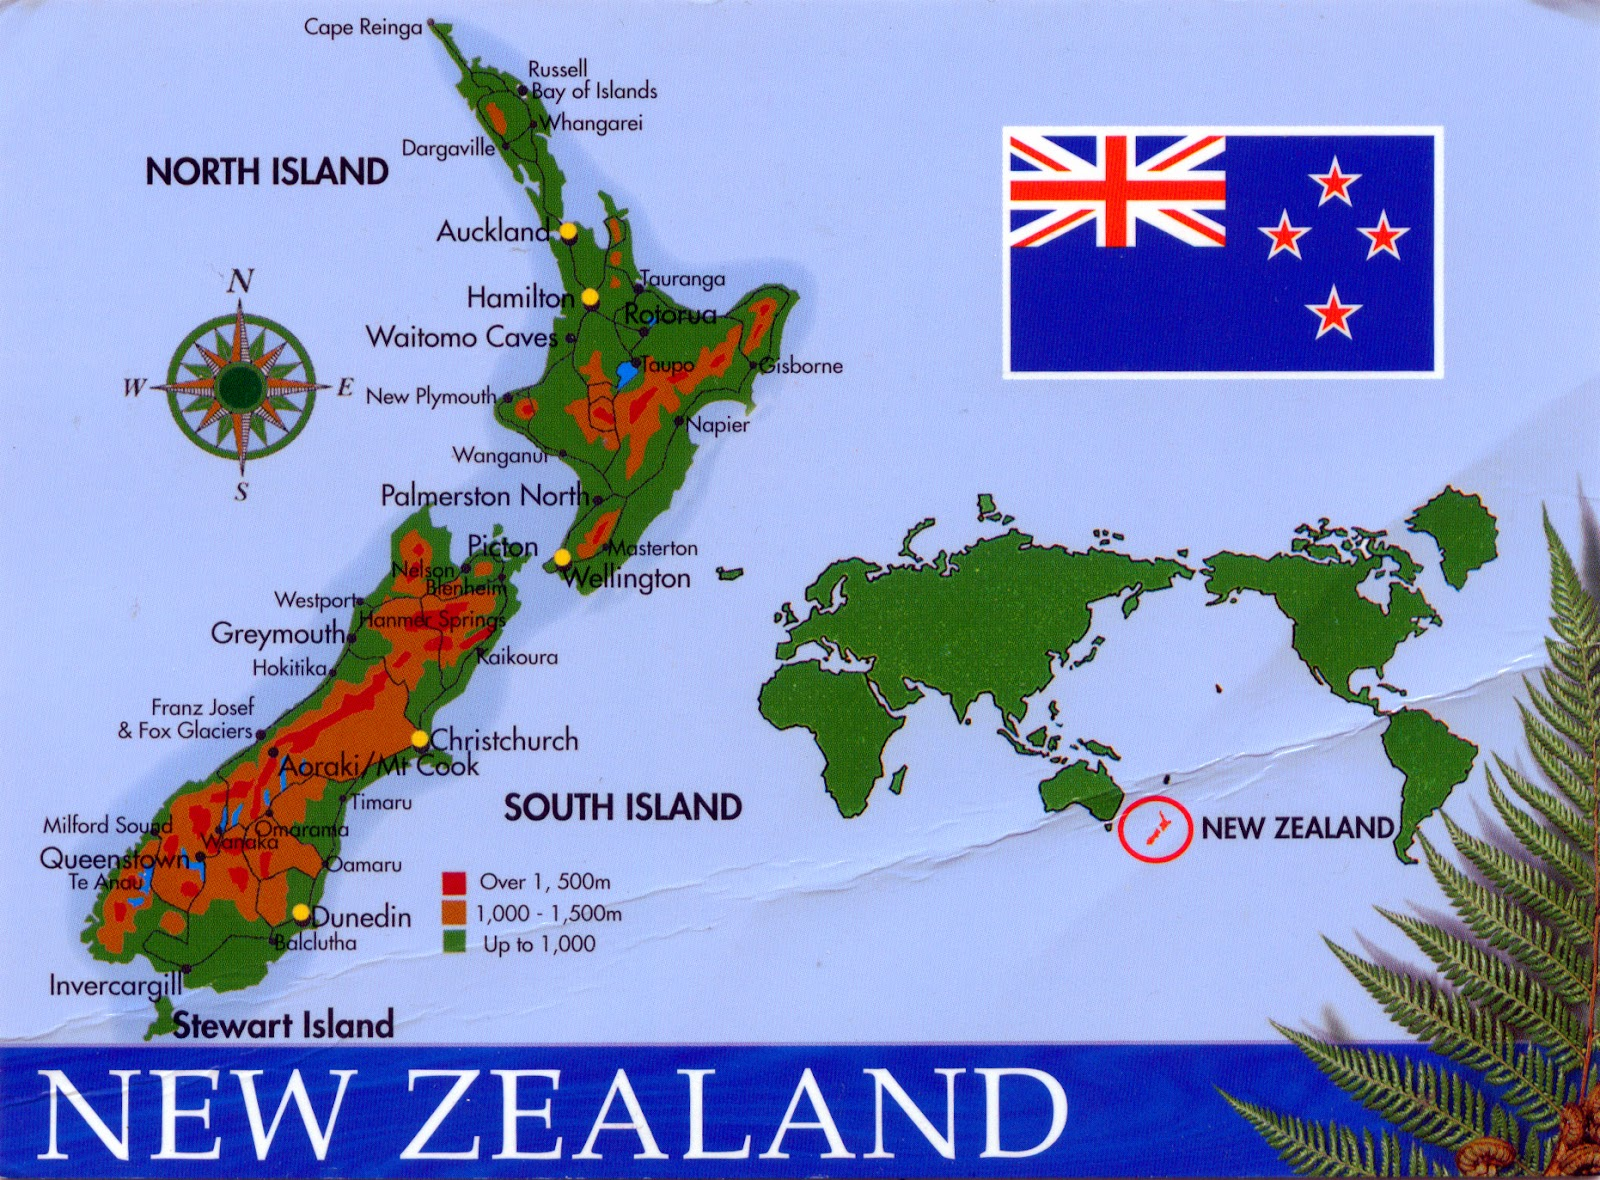 New Zealand Maori Map.World Come To My Home 0975 New Zealand The Map And The Flag Of